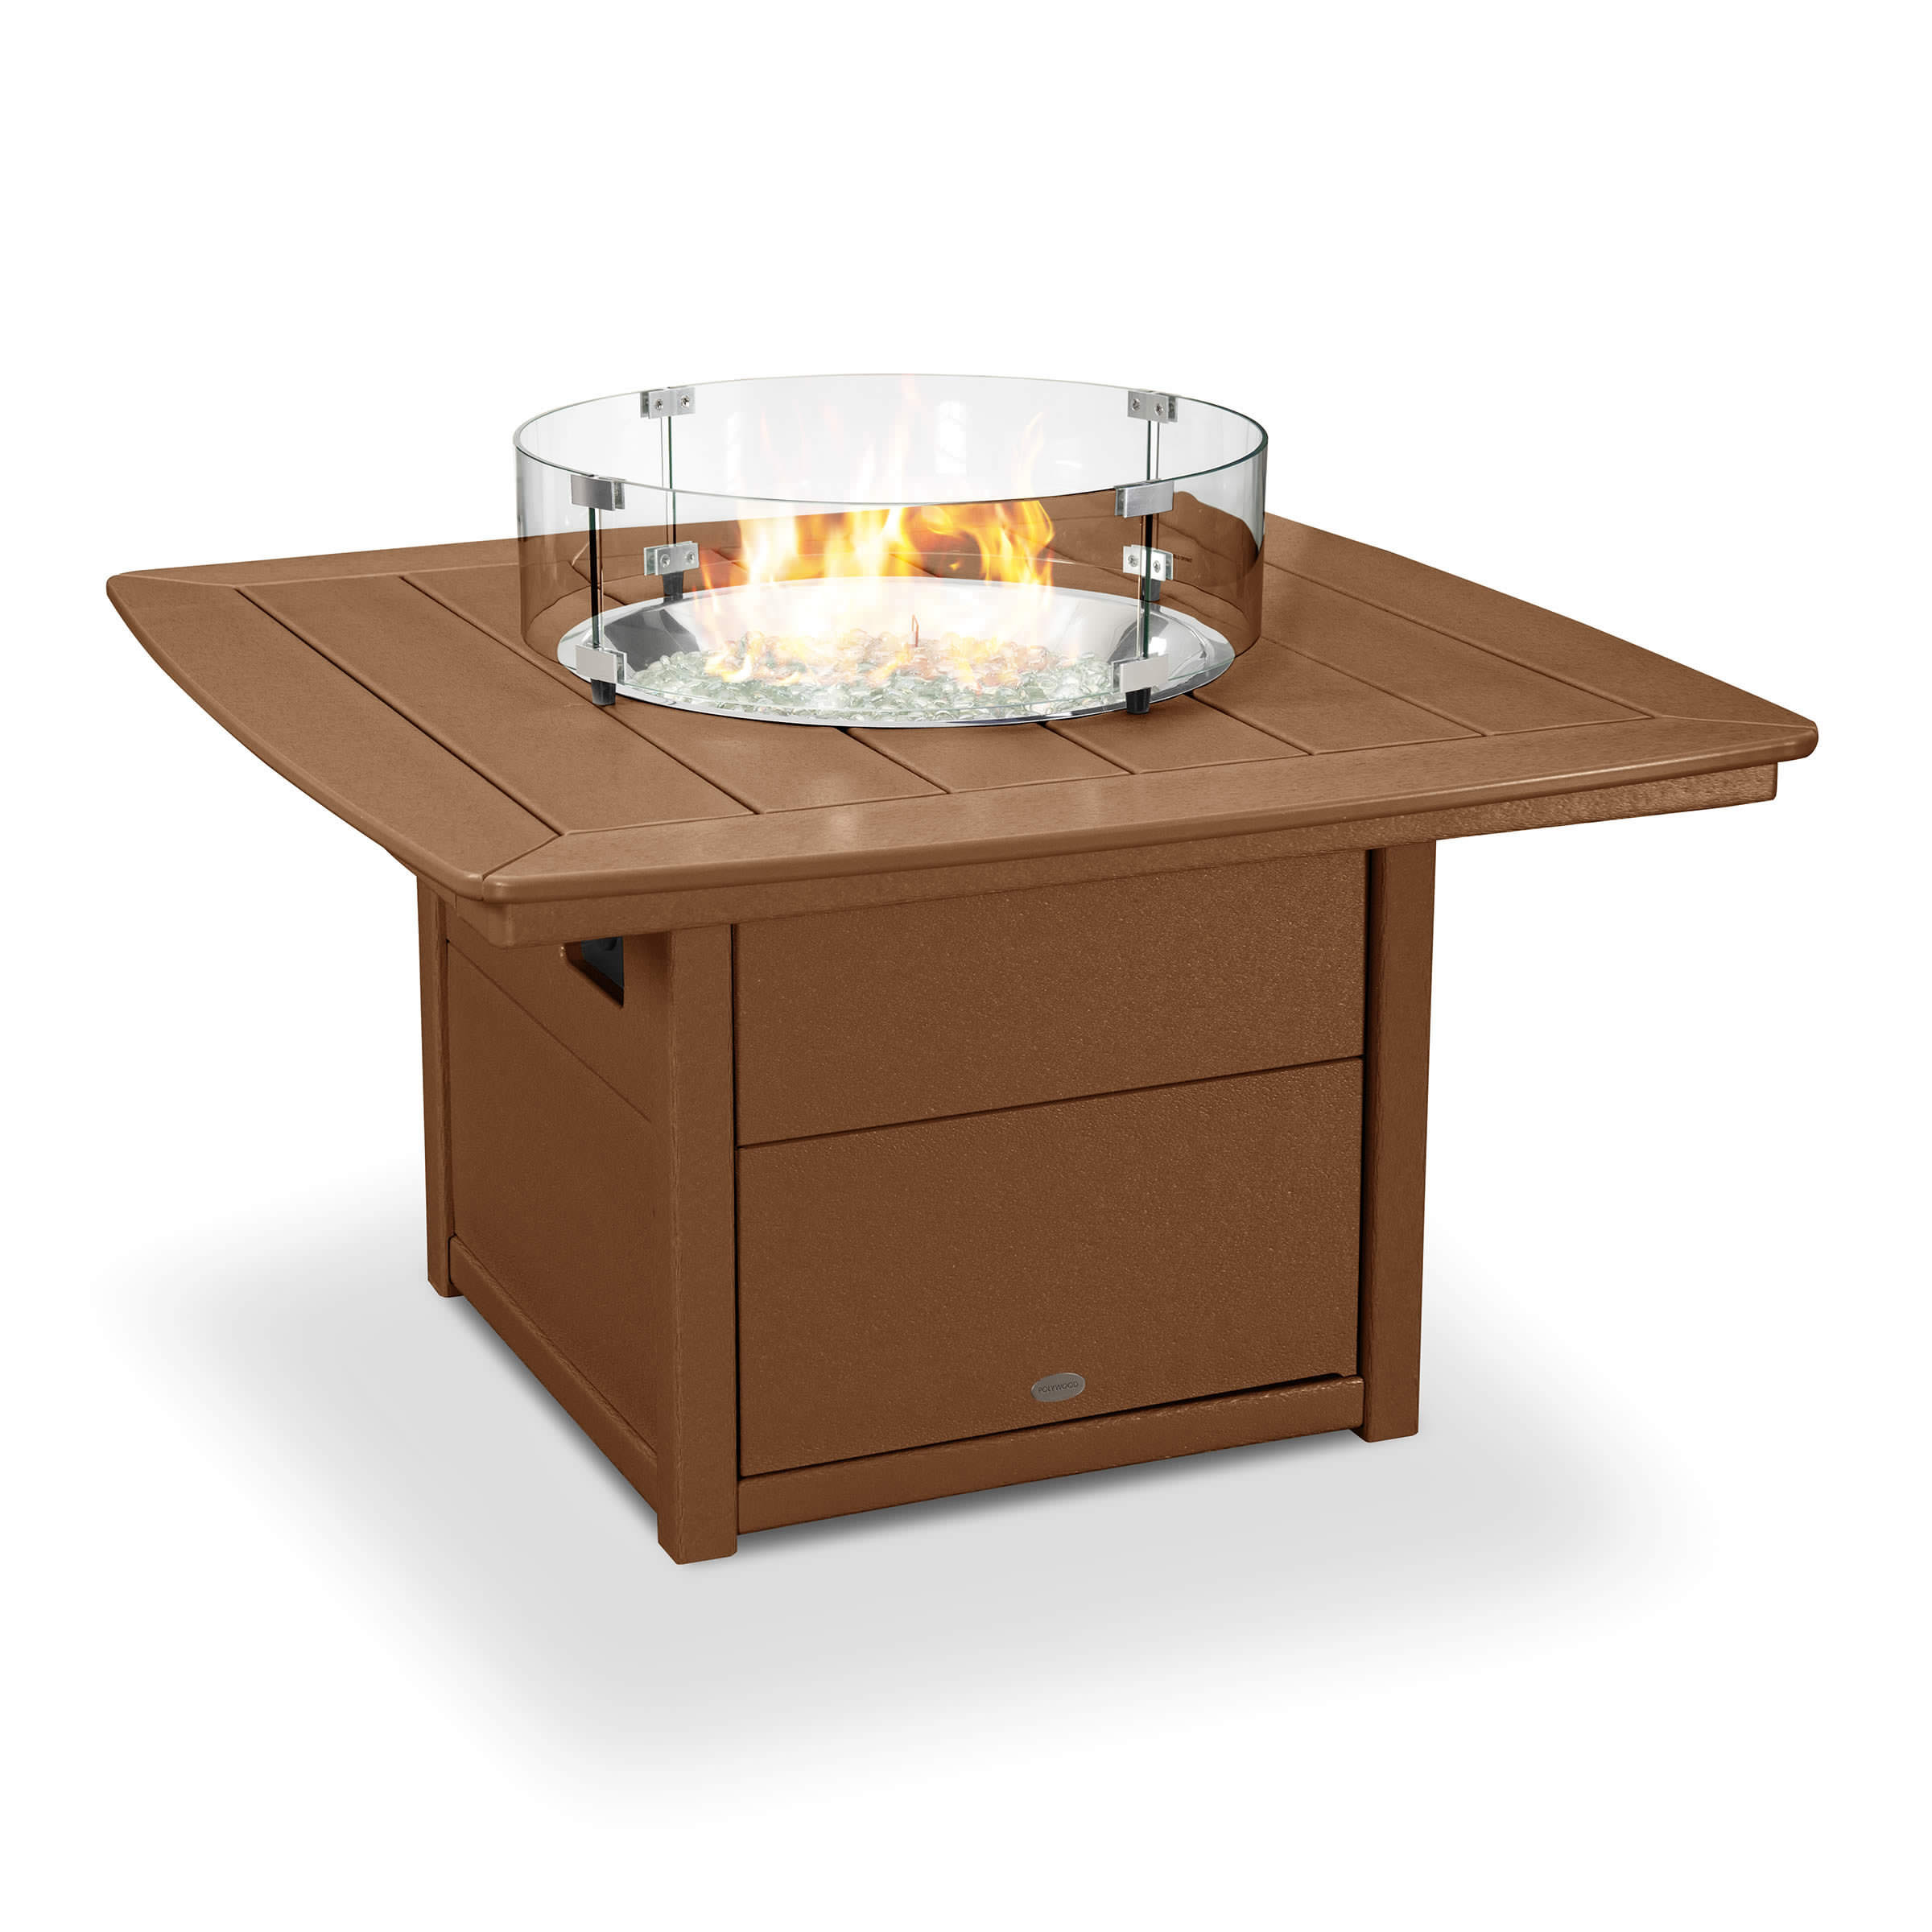 POLYWOOD Nautical 42 in Fire Pit Table